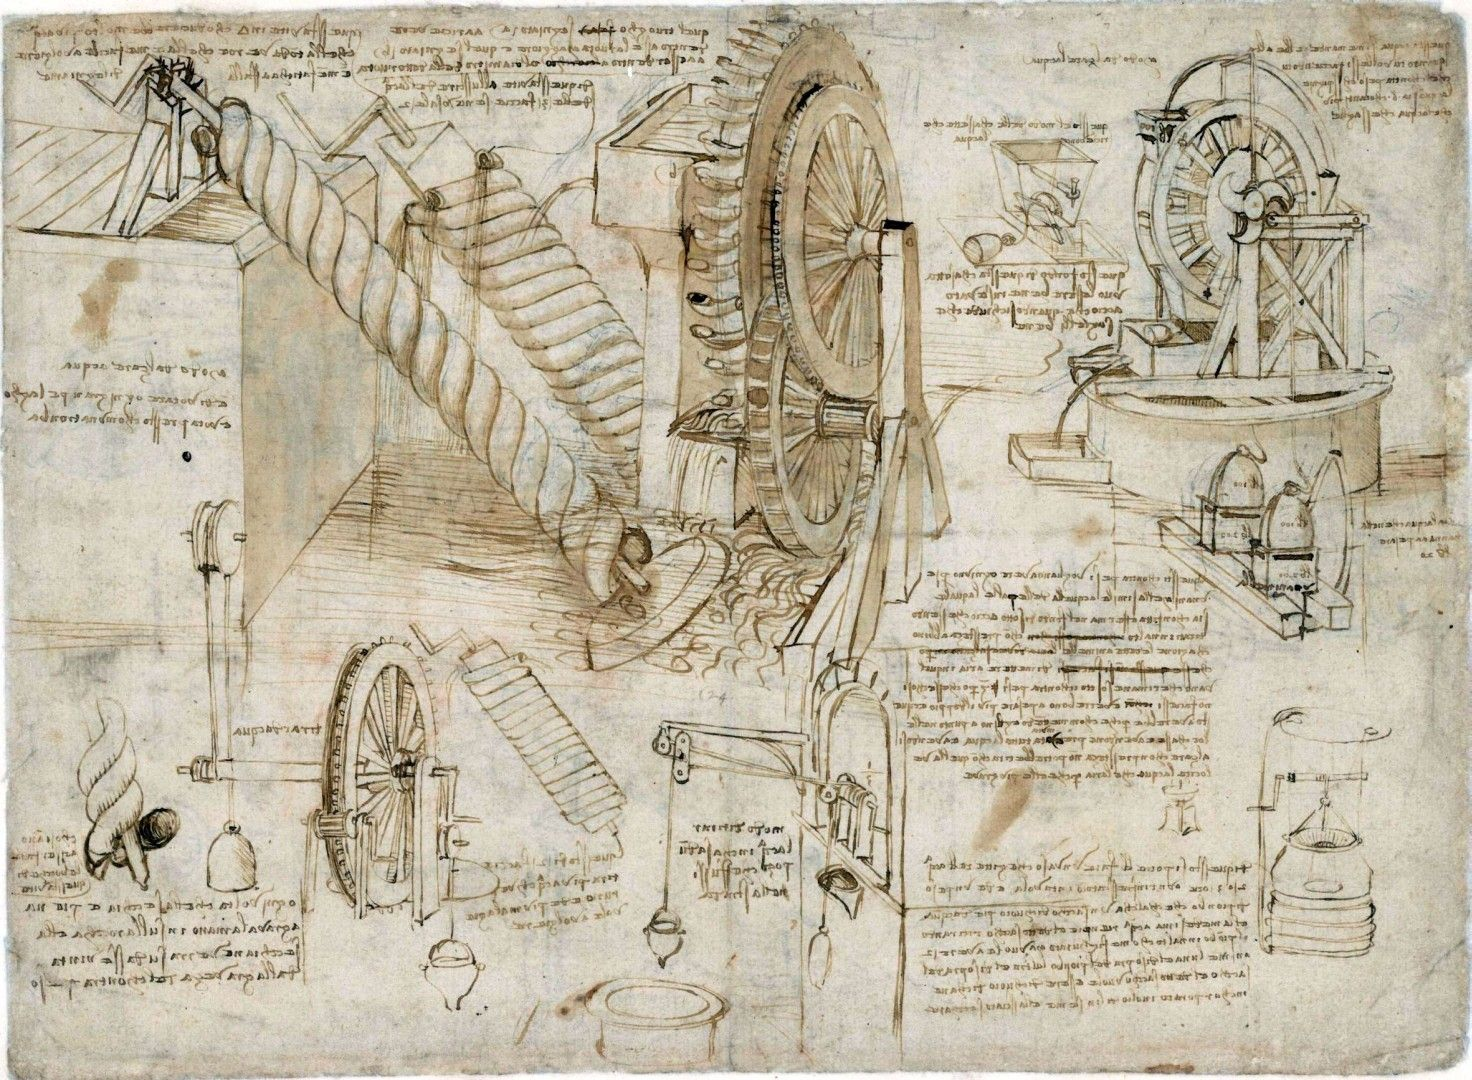 Conoscenza Link Http Www Bta It Txt A0 06 Bta00636 Html Da Vinci Inventions Da Vinci Sketches Sketch Book